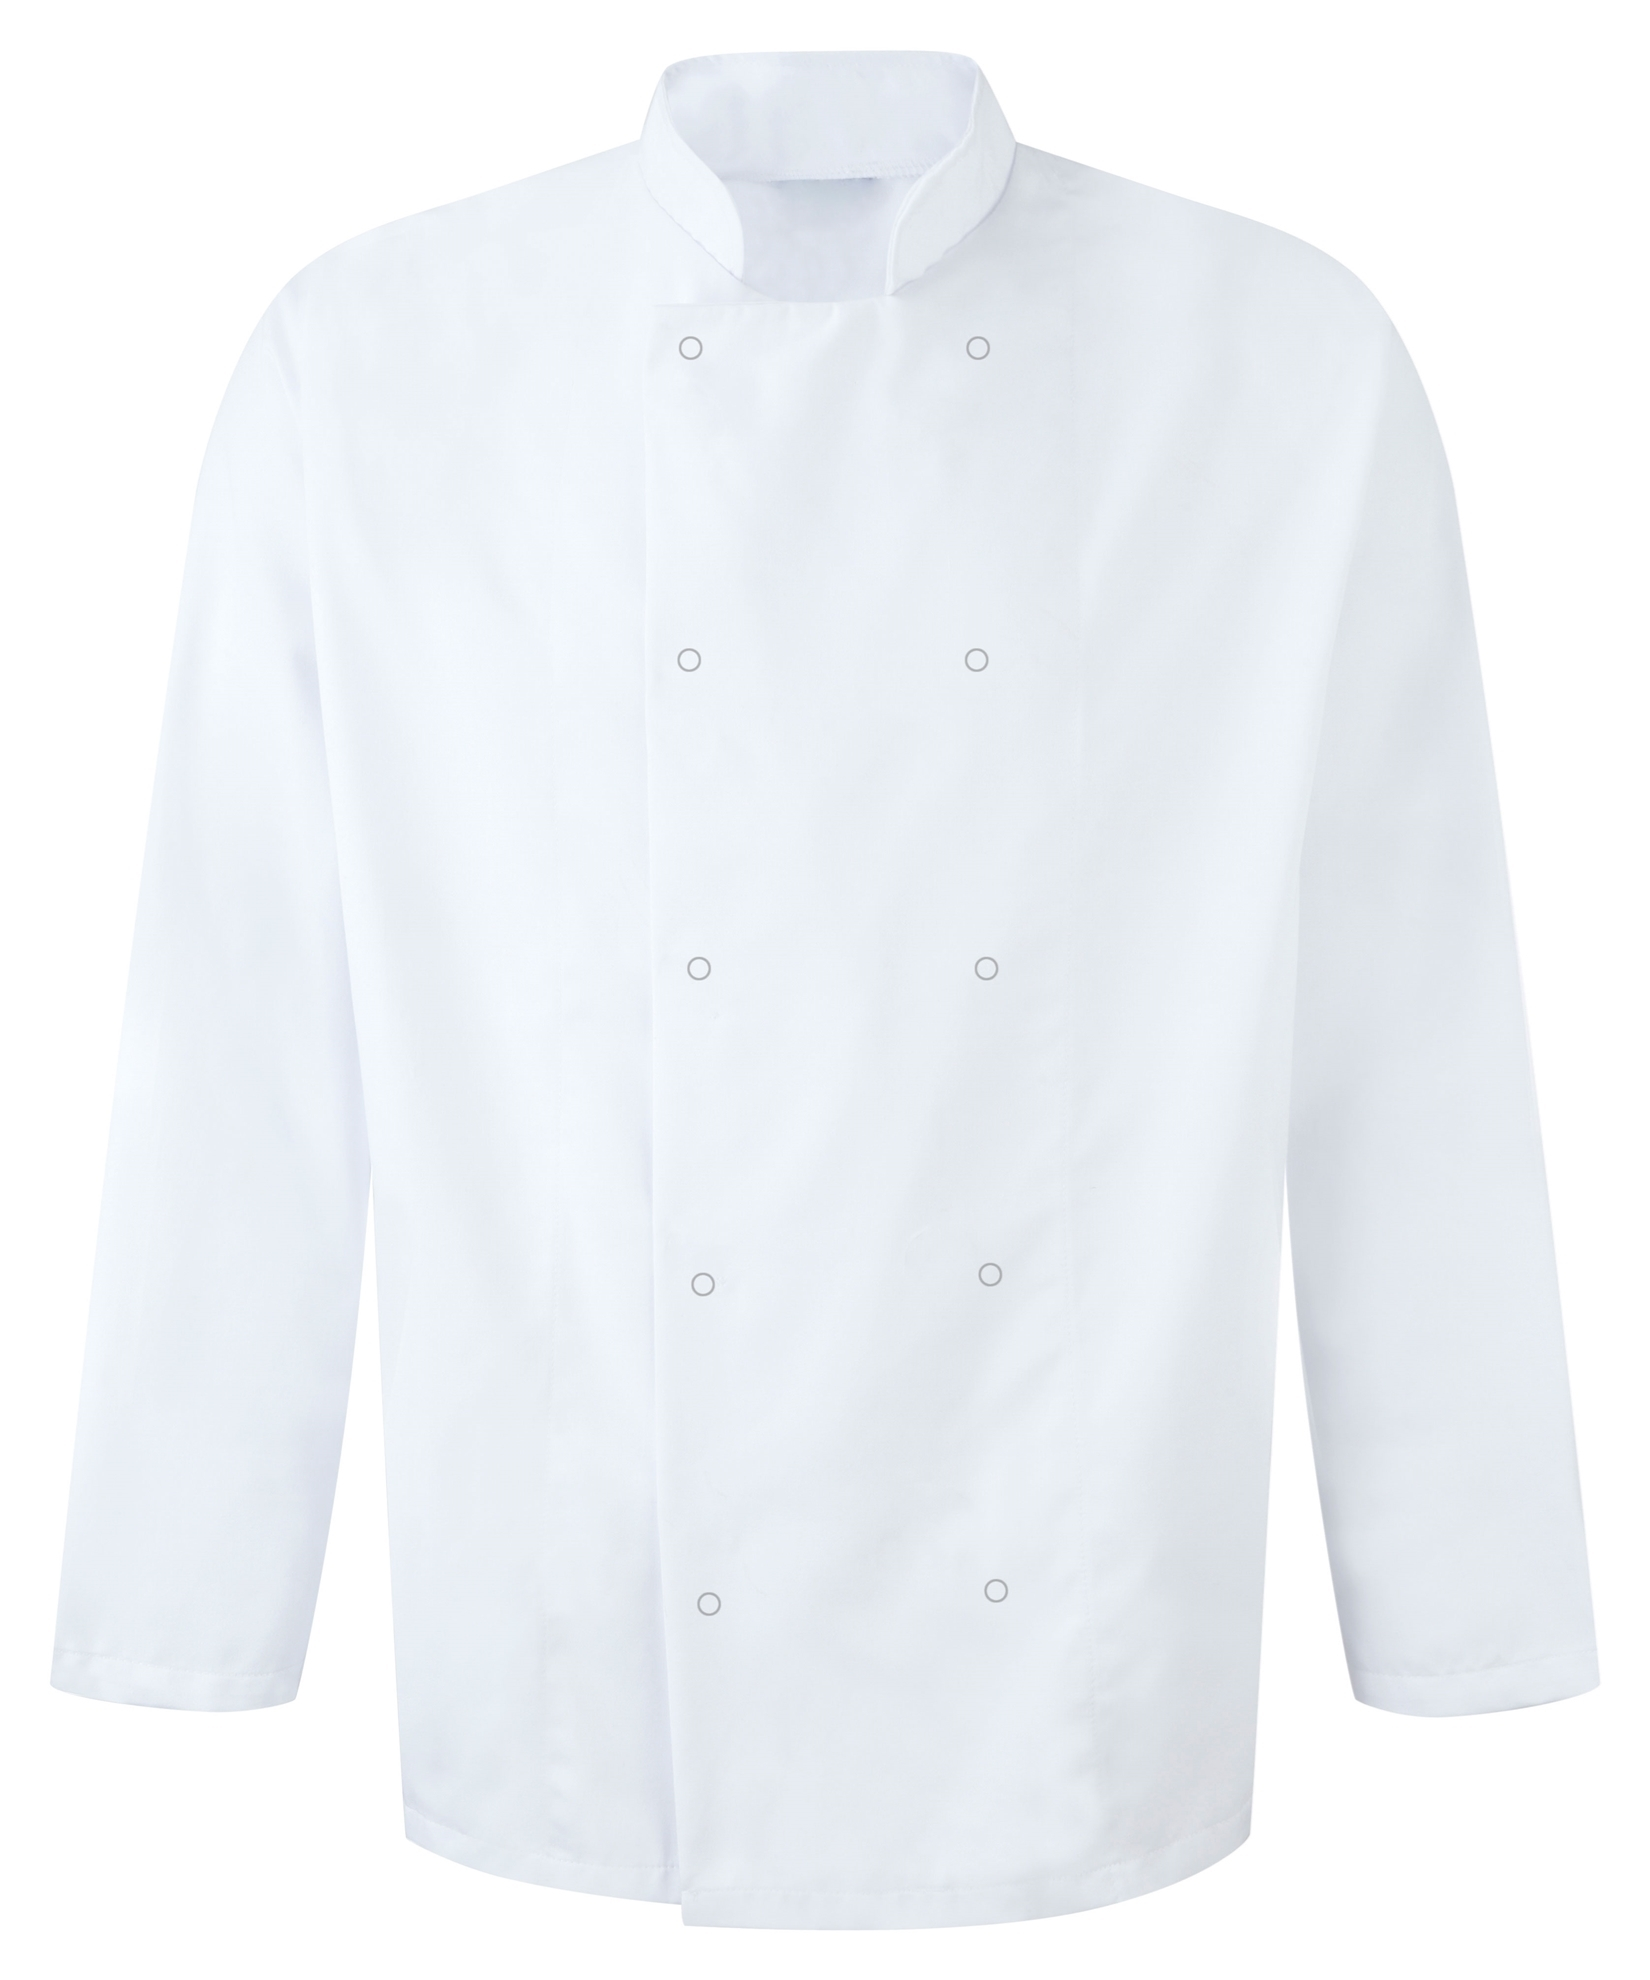 Picture of Unisex Long Sleeve Studded Chefs Jacket - White